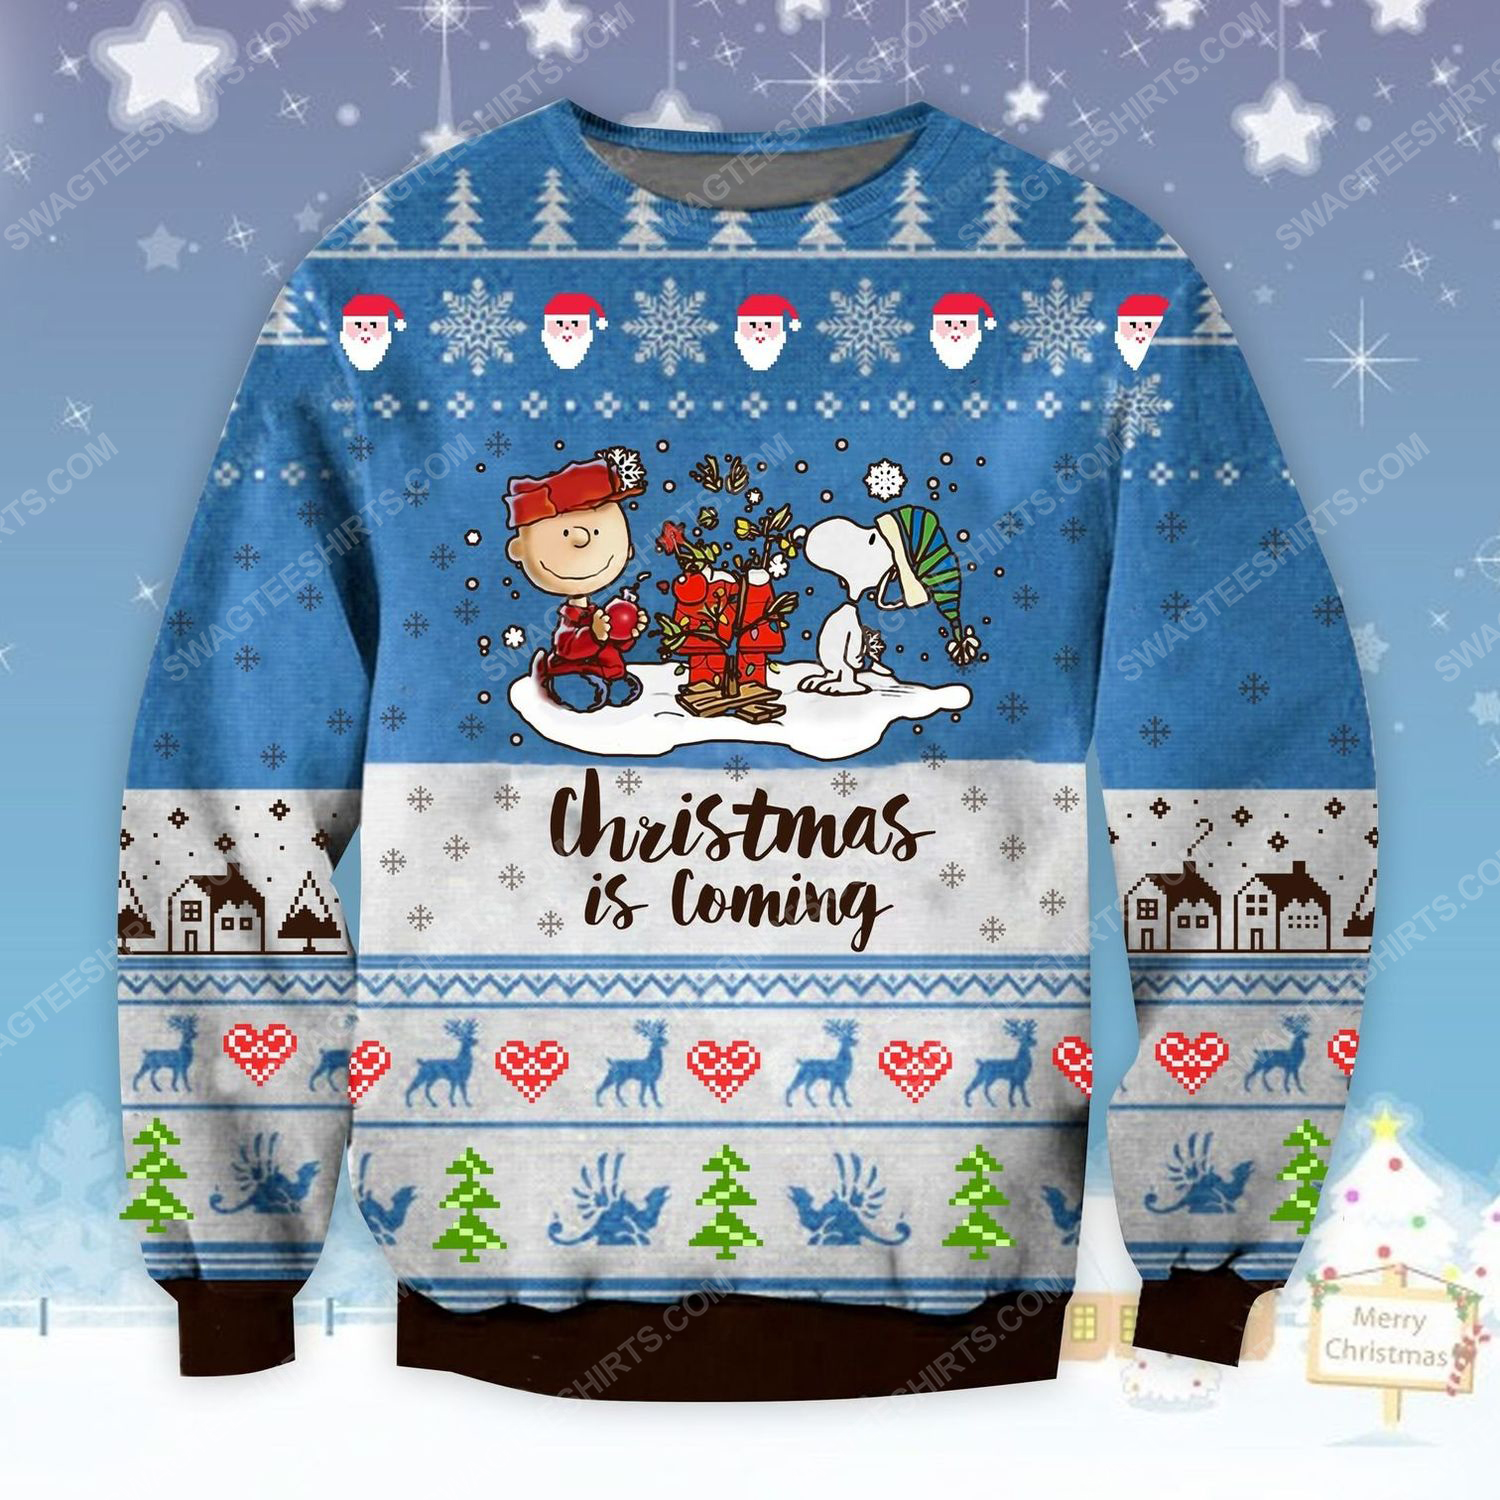 Charlie brown and snoopy christmas is coming ugly christmas sweater